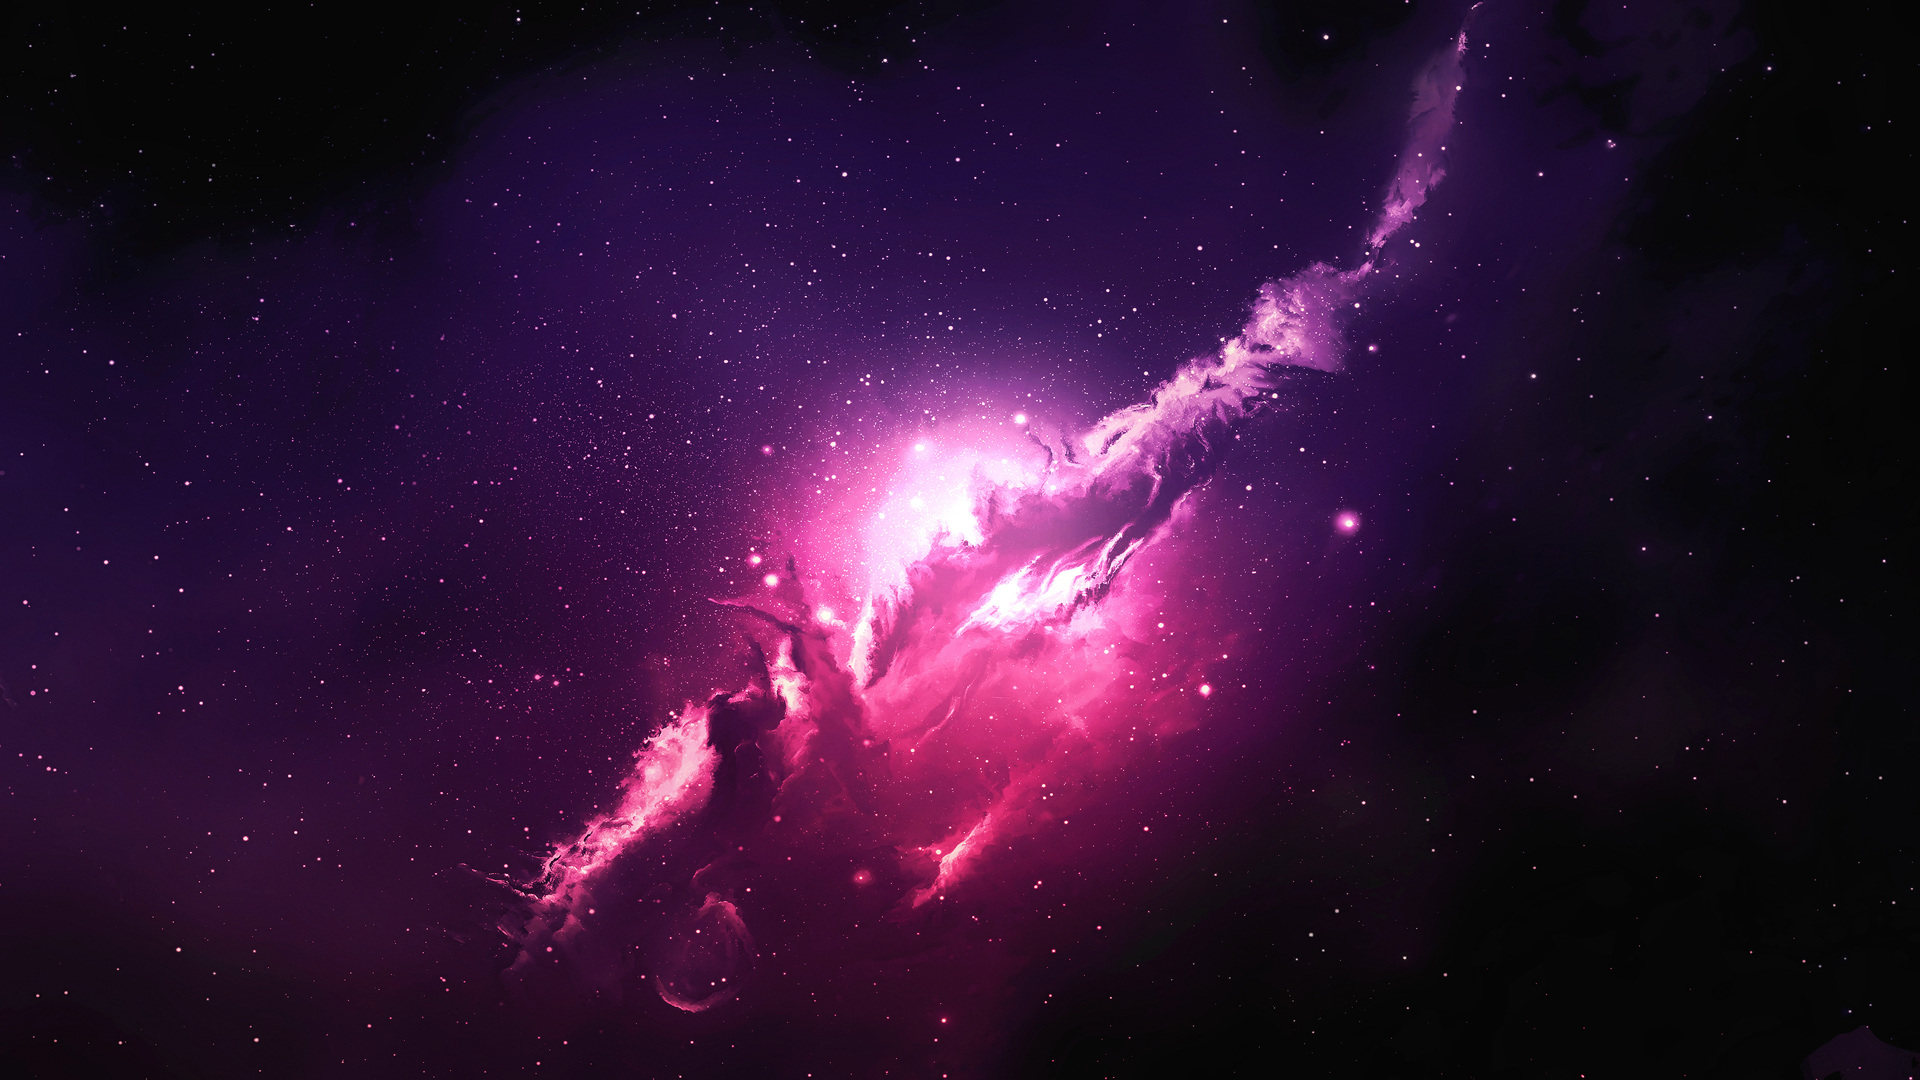 1920x1080 nebula stars universe galaxy space 4k laptop full hd 1080p